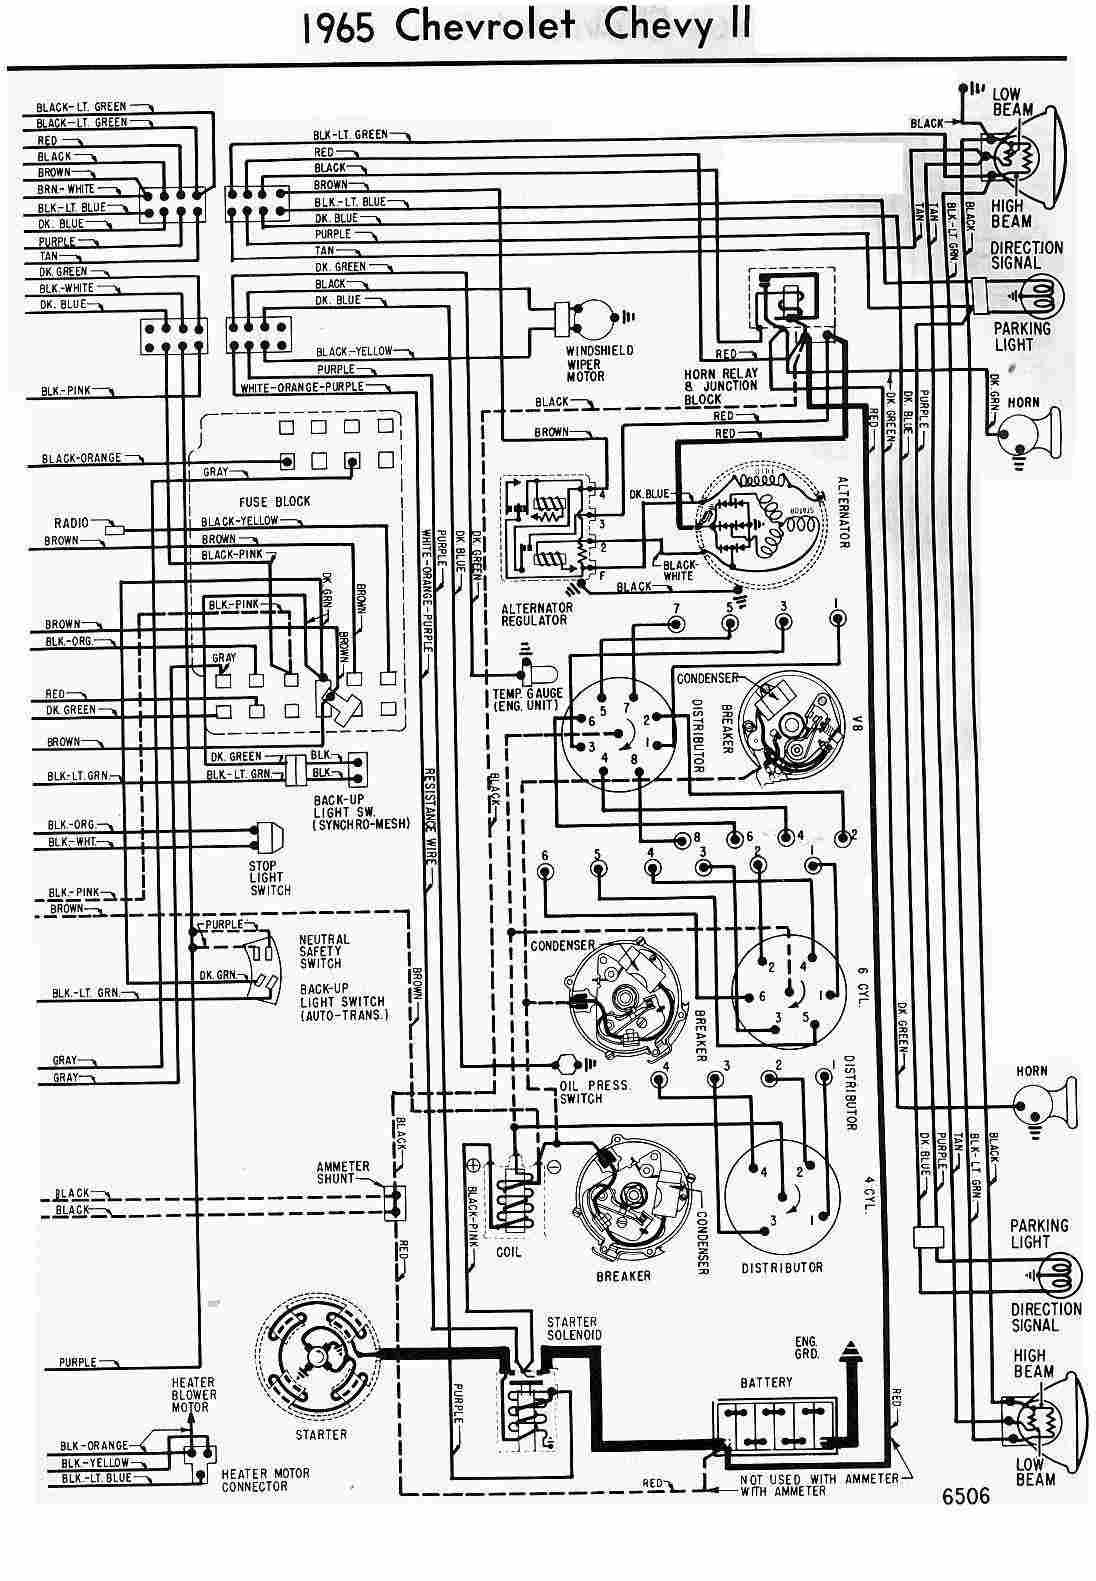 1967 Cj5 Wiring Diagram Libraries Mustang Electrical Pdf Library65 Malibu Engine Free Download Rh